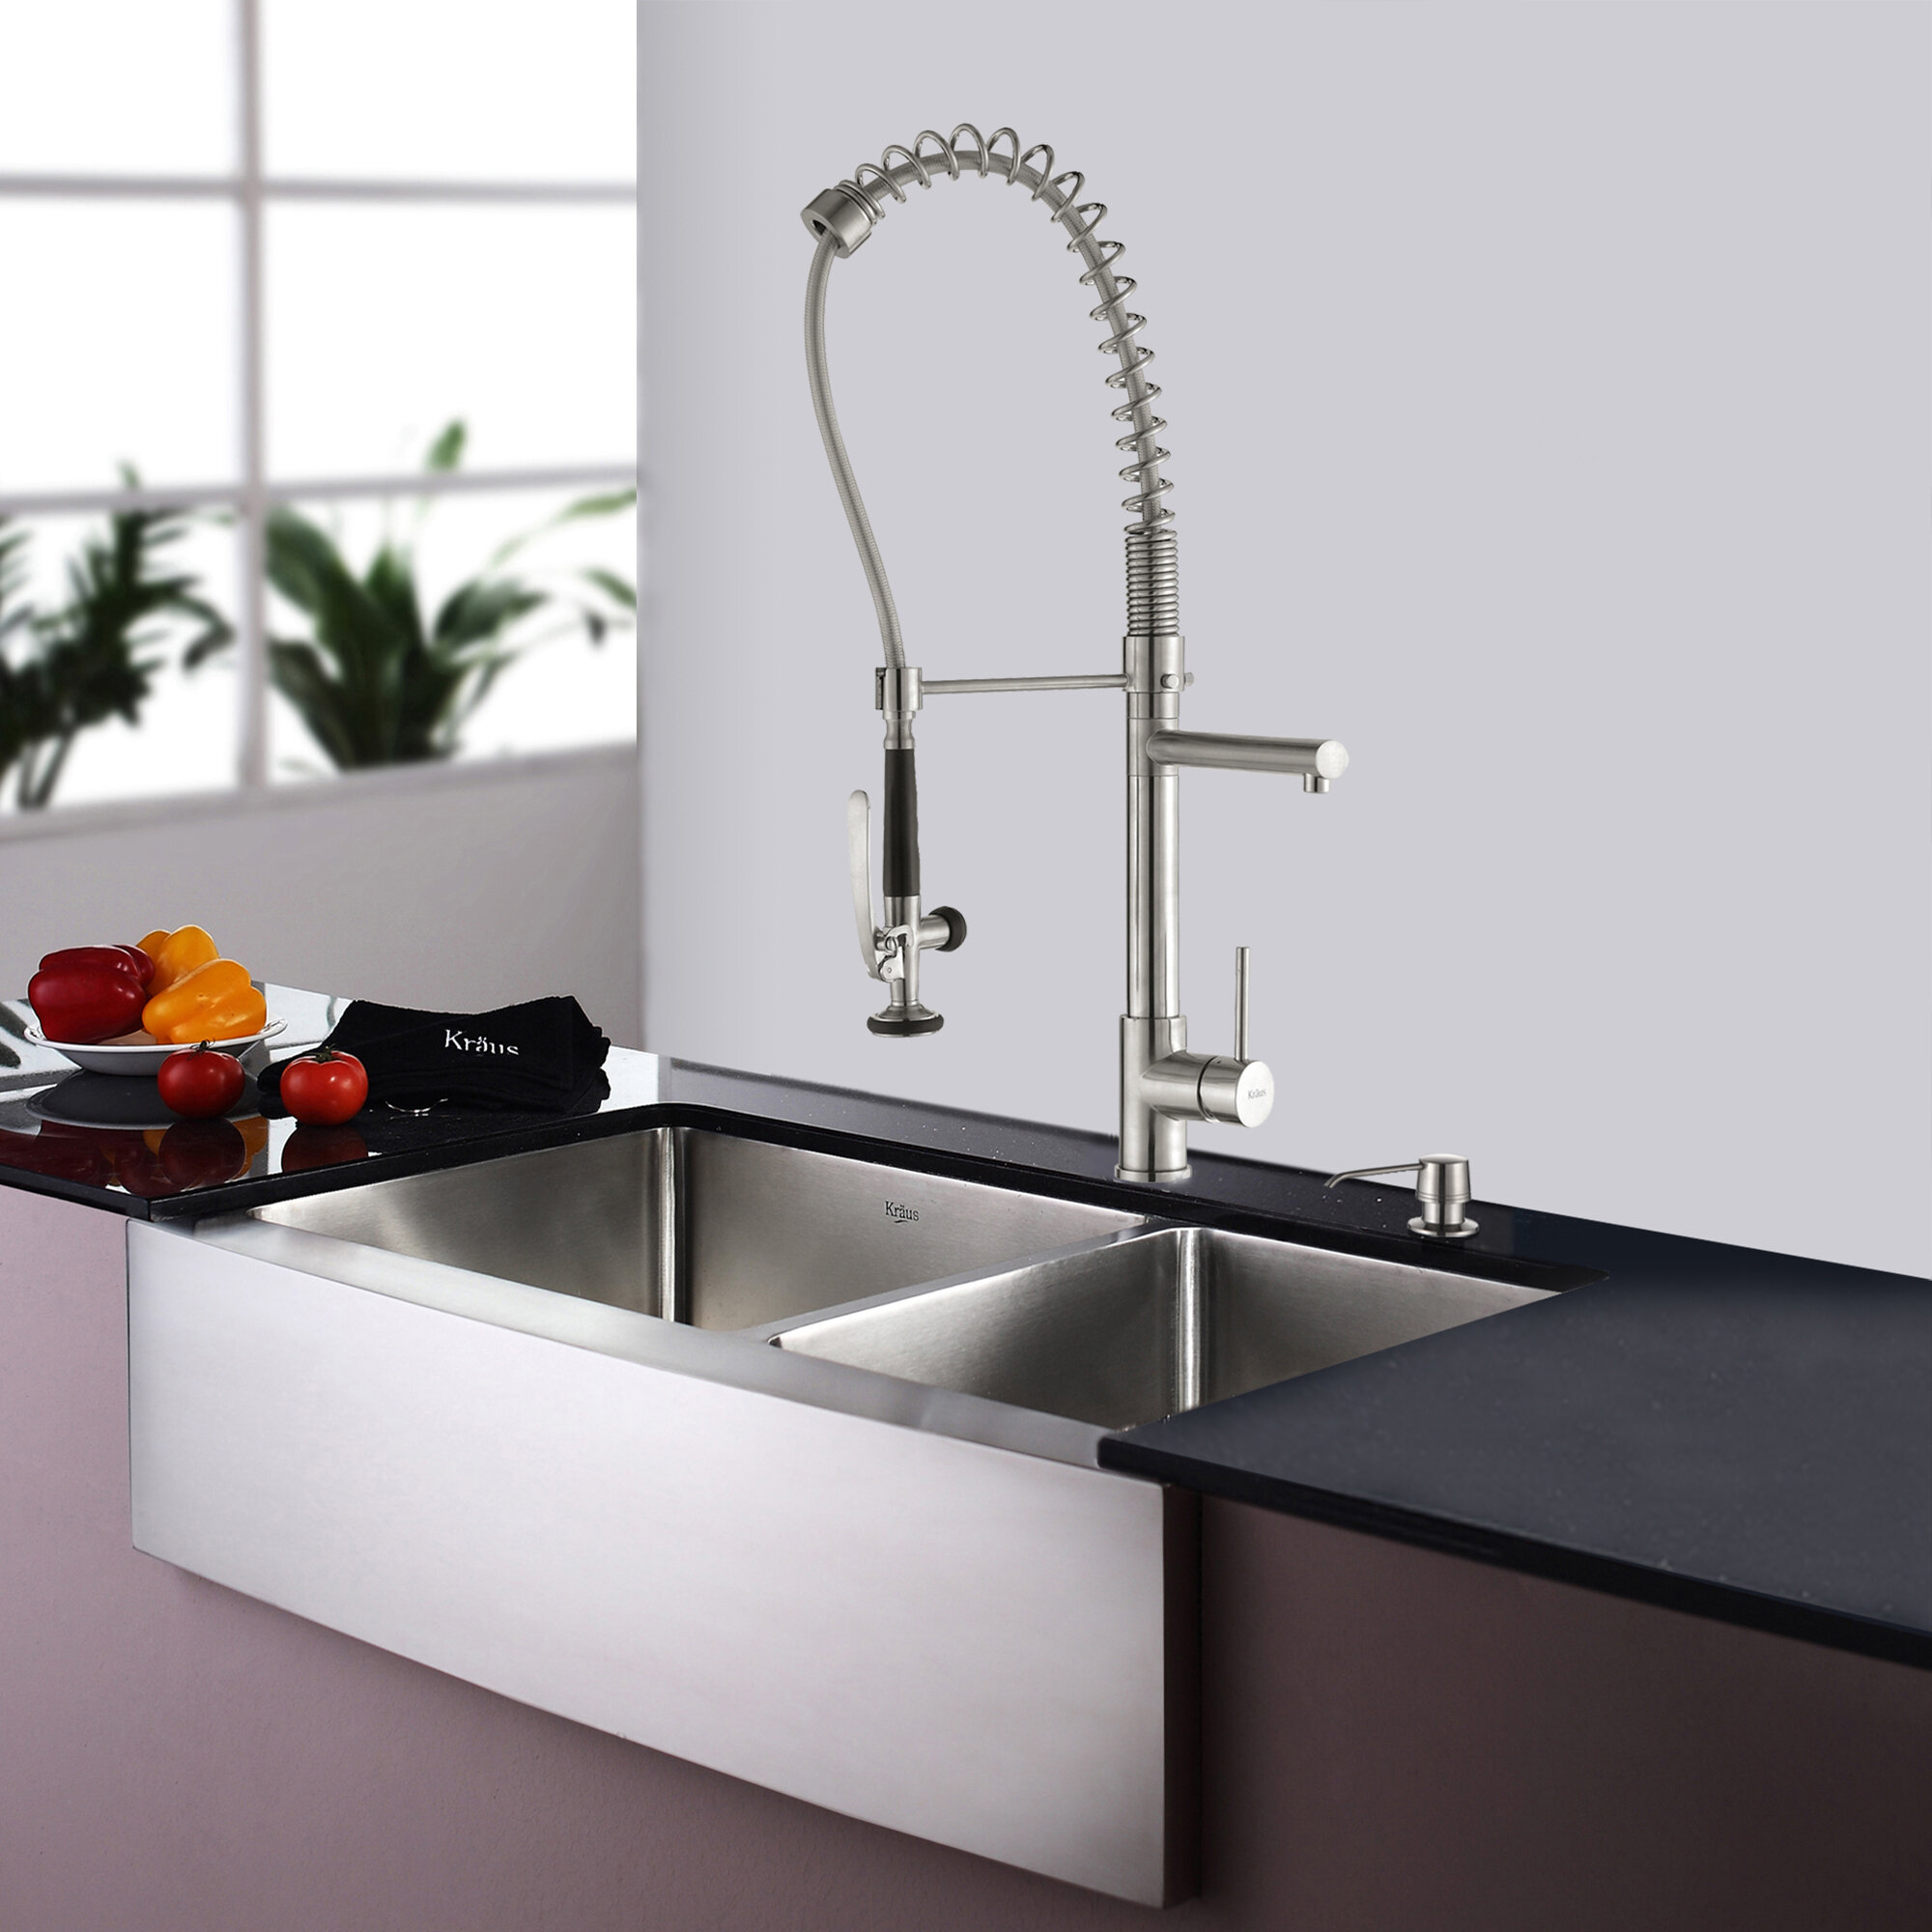 KHF203-36-KPF1602-KSD30SS 35.9  L x 20.75  W Double Basin Farmhouse Kitchen Sink Set with Kitchen Faucet and Soap Dispenser & KHF203-36-KPF1602-KSD30SSCH Kraus 35.9